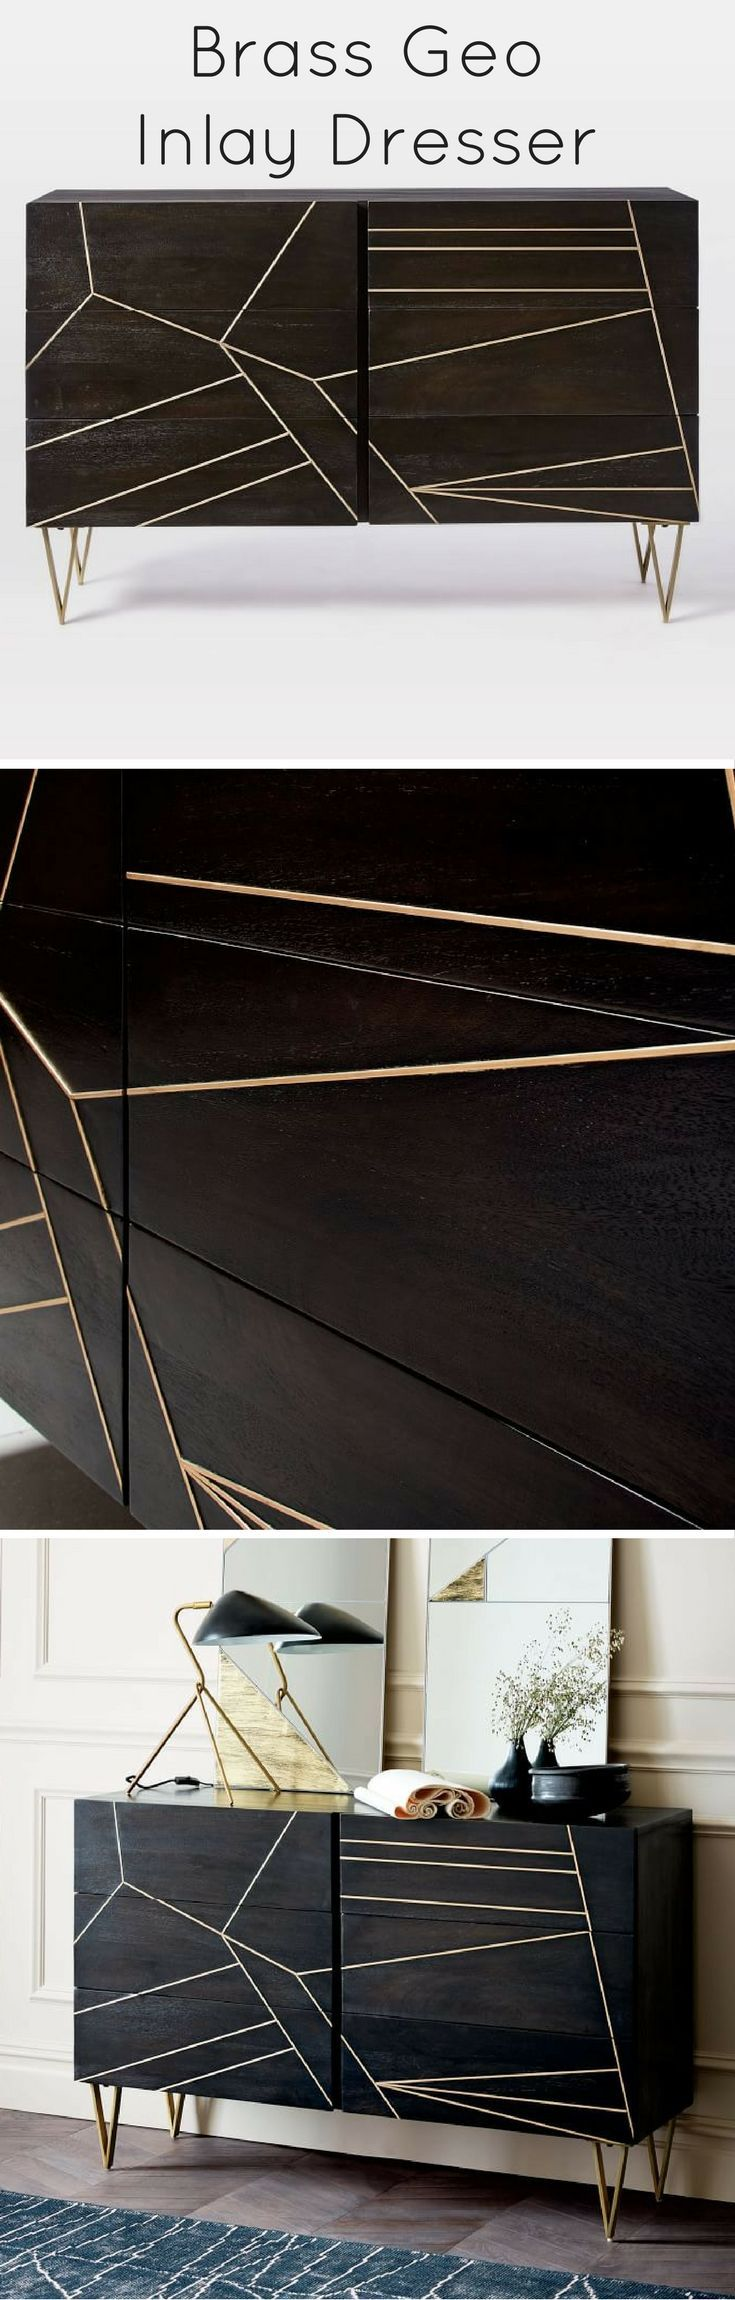 Antique brassfinished metal is inlaid into wood for a modern luxe